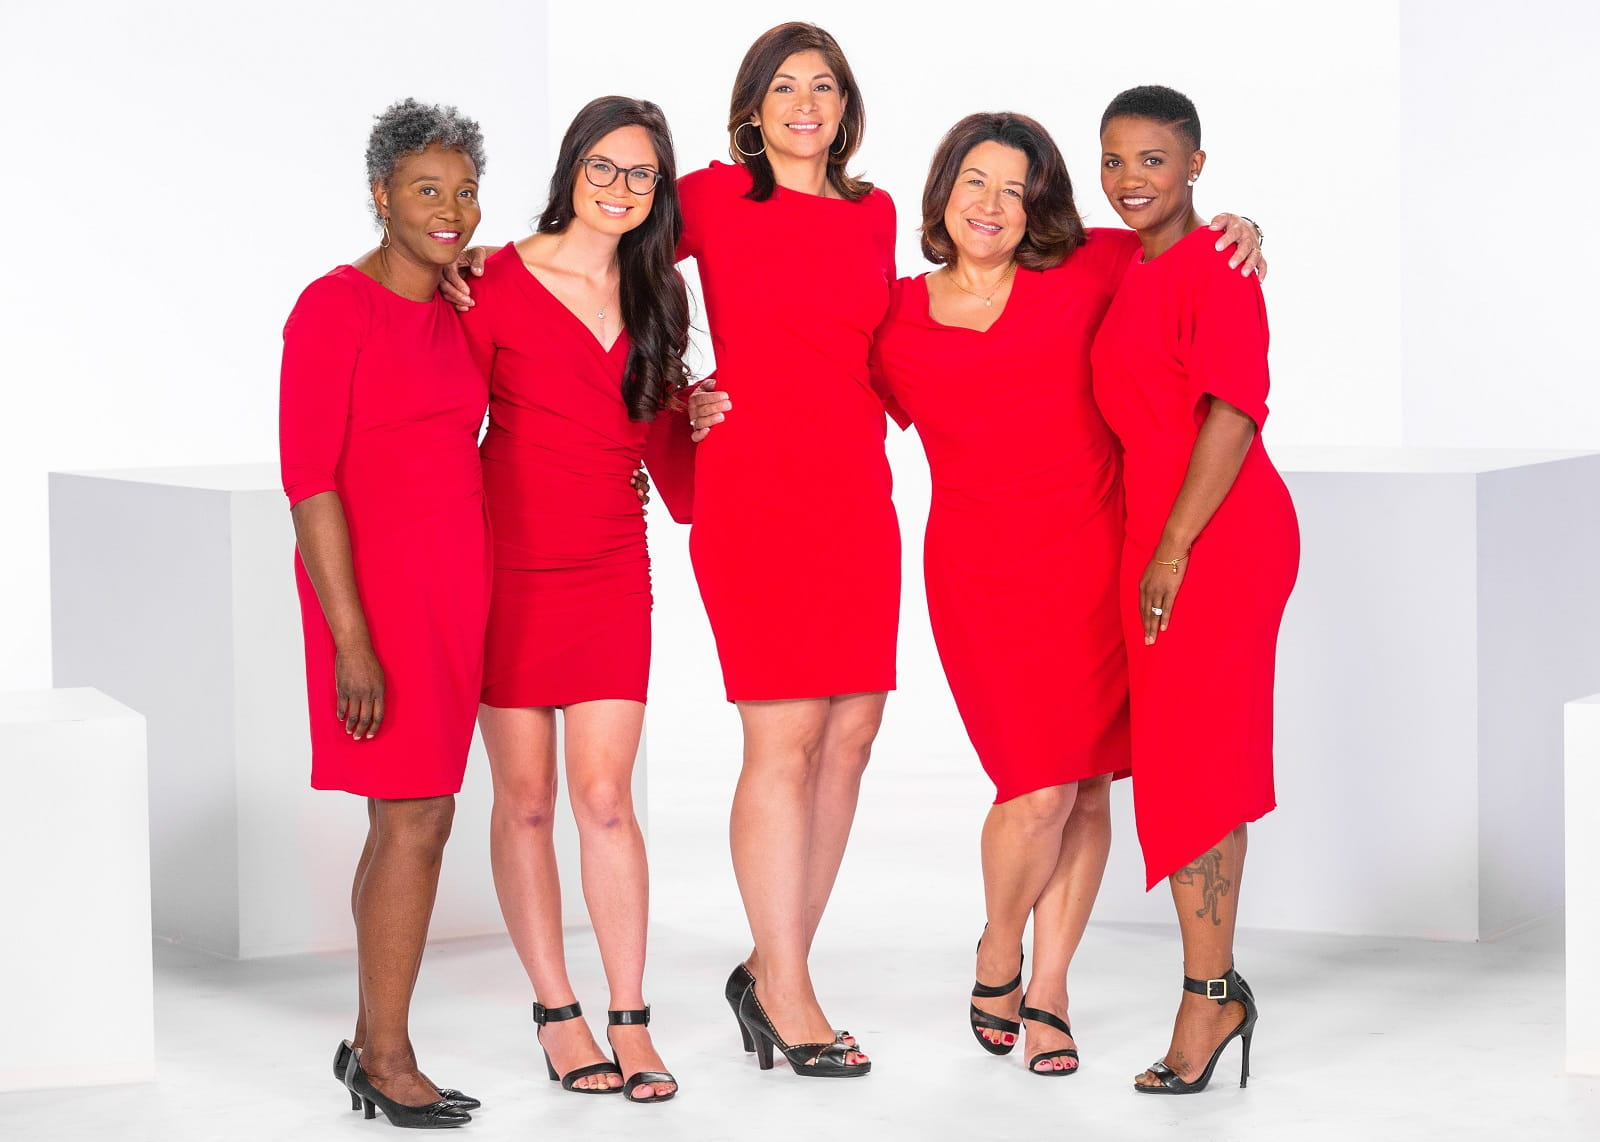 5 women wearing red